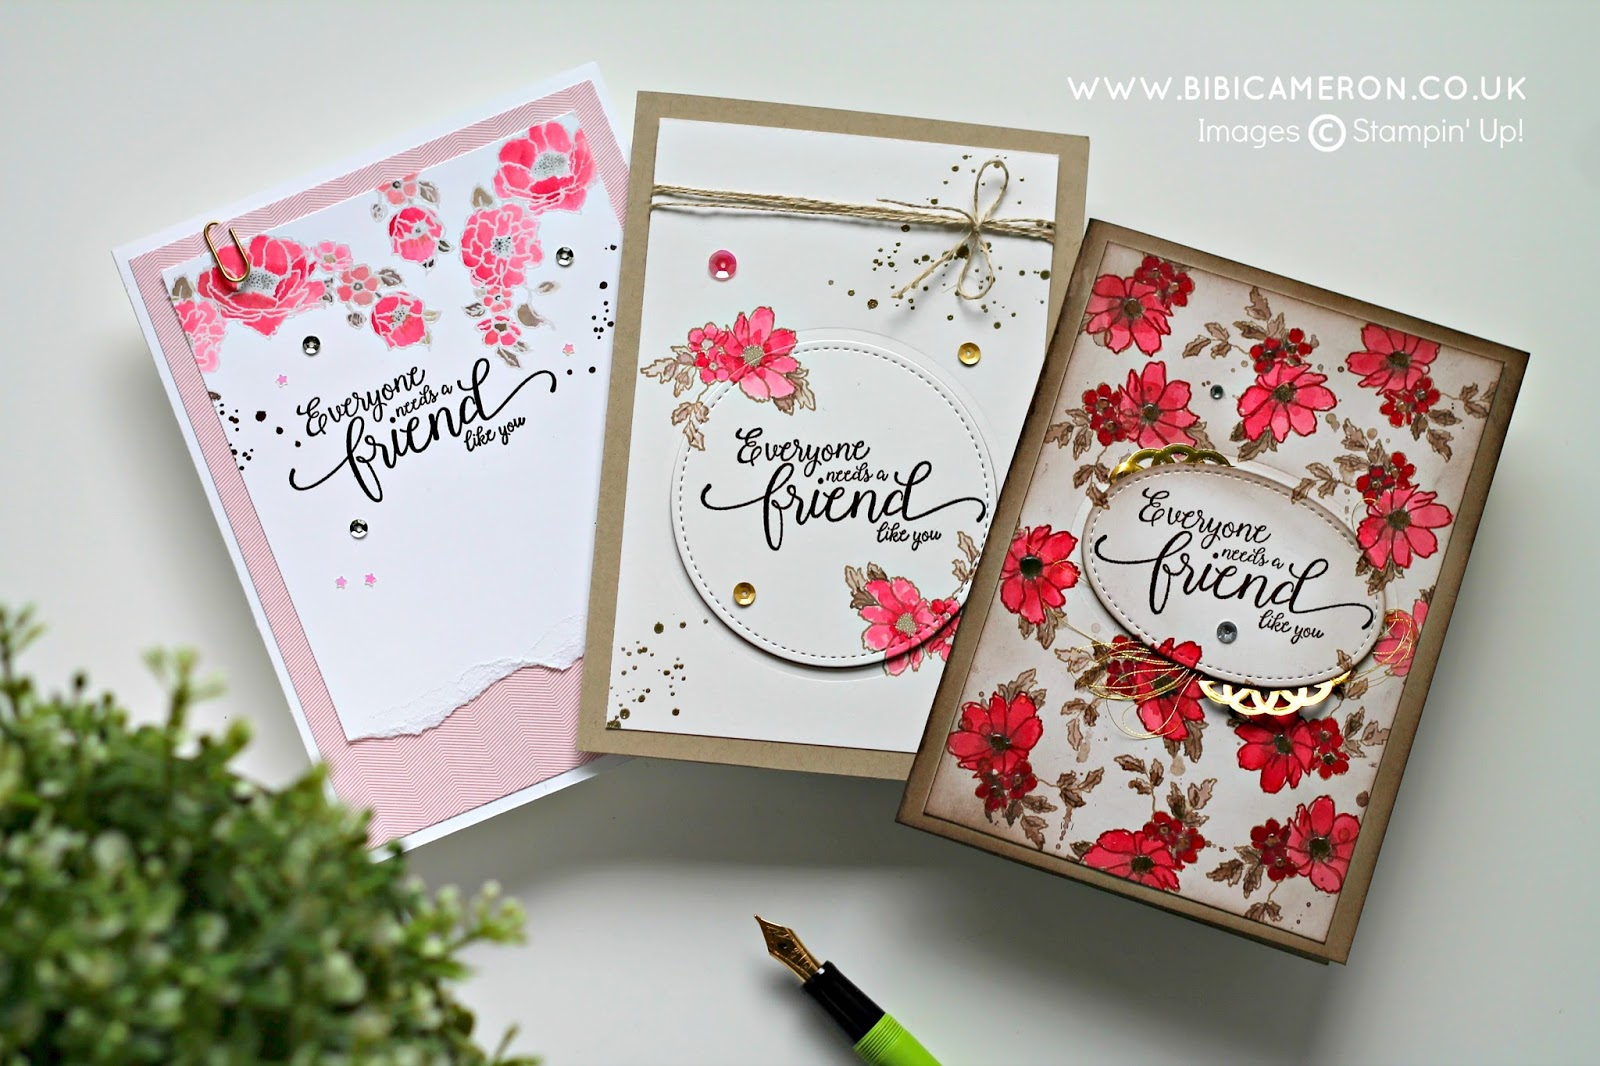 Stampin' Up! Suite Sentiments and Timeless Love Stamp Sets – GDP065